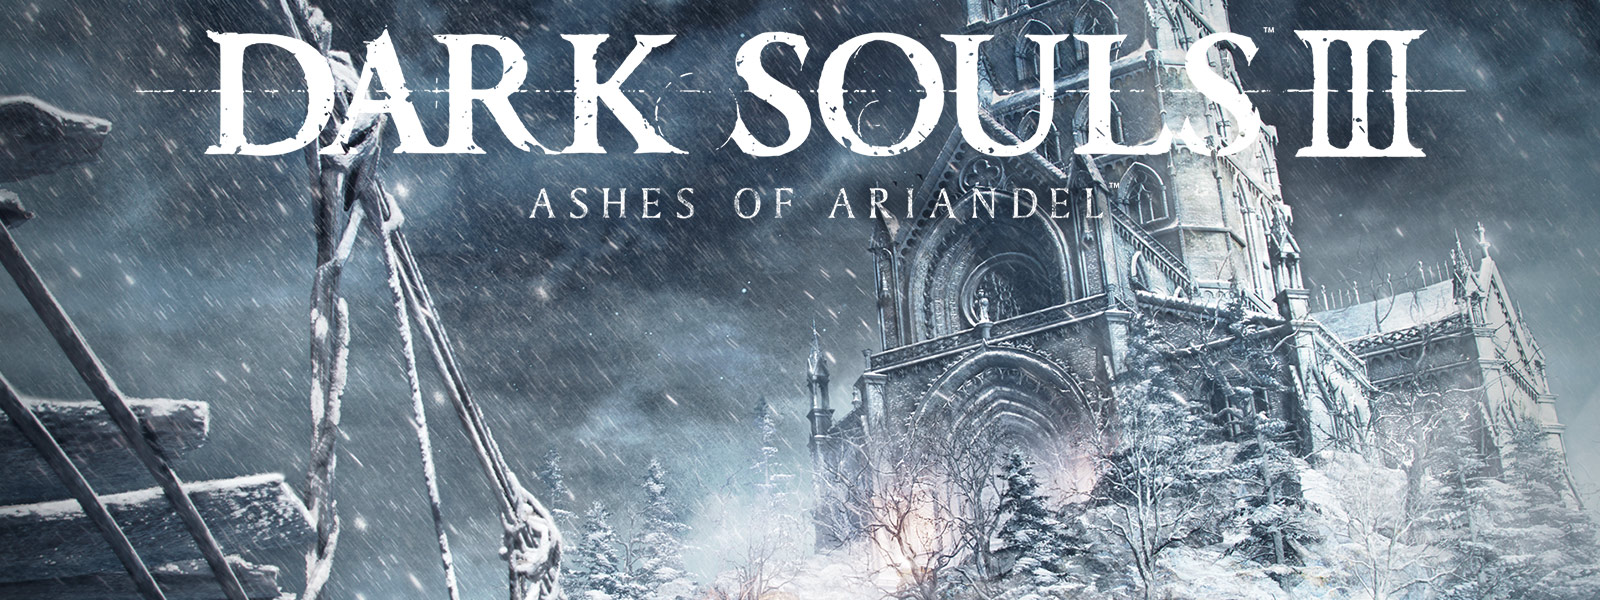 Dark Souls 3-DLC The Ashes of Ariendel